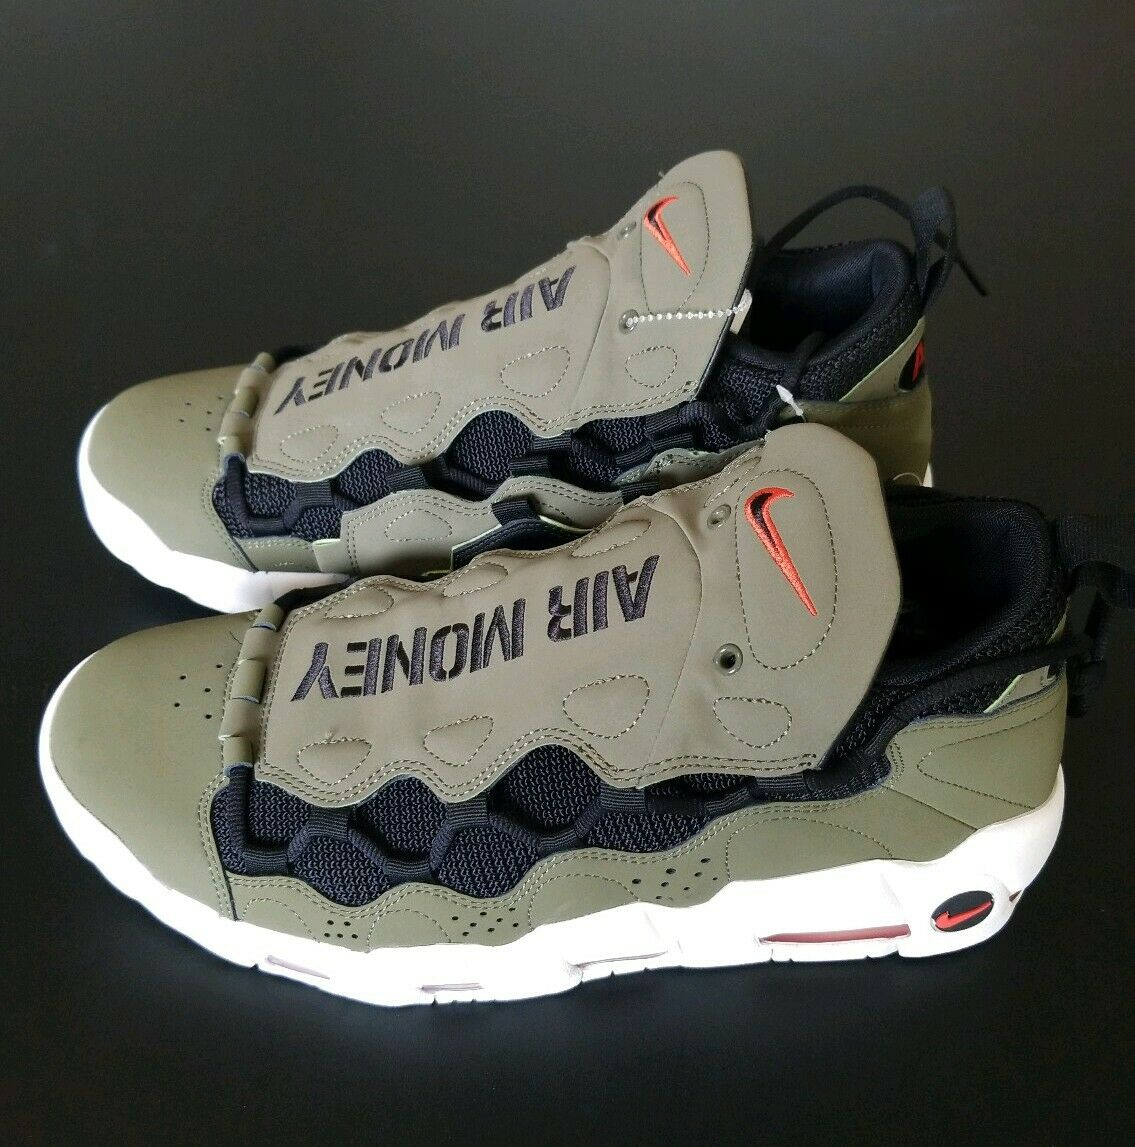 Nike Air More Money (Medium Olive Black-Habablack Red) shoes AJ2998-200 SZ 11.5